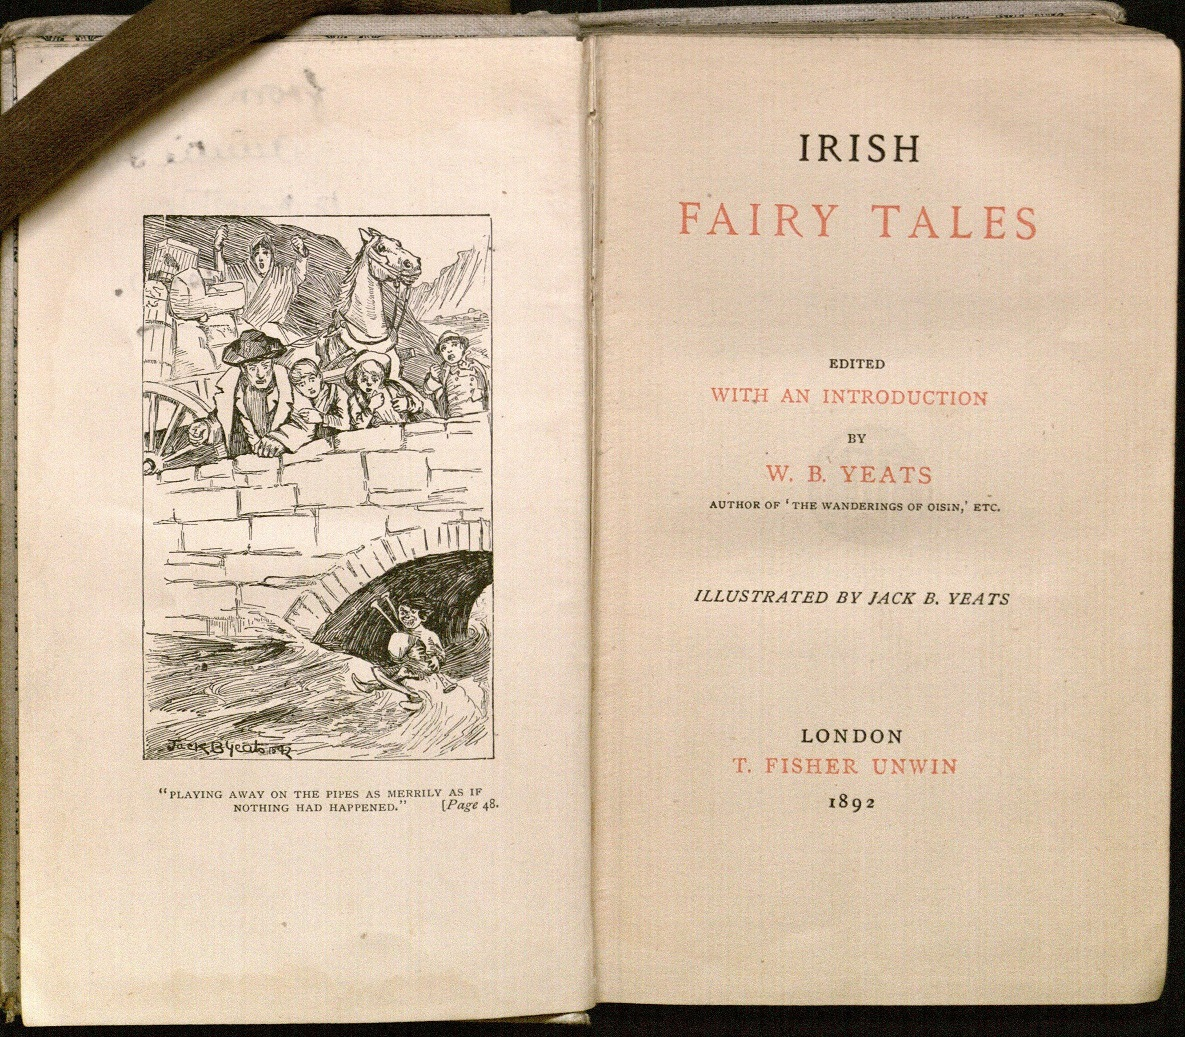 Title page for W. B. Yeats' Irish Fairy Tales (1892), with frontispiece illustration by Yeats's brother, Jack B. Yeats.